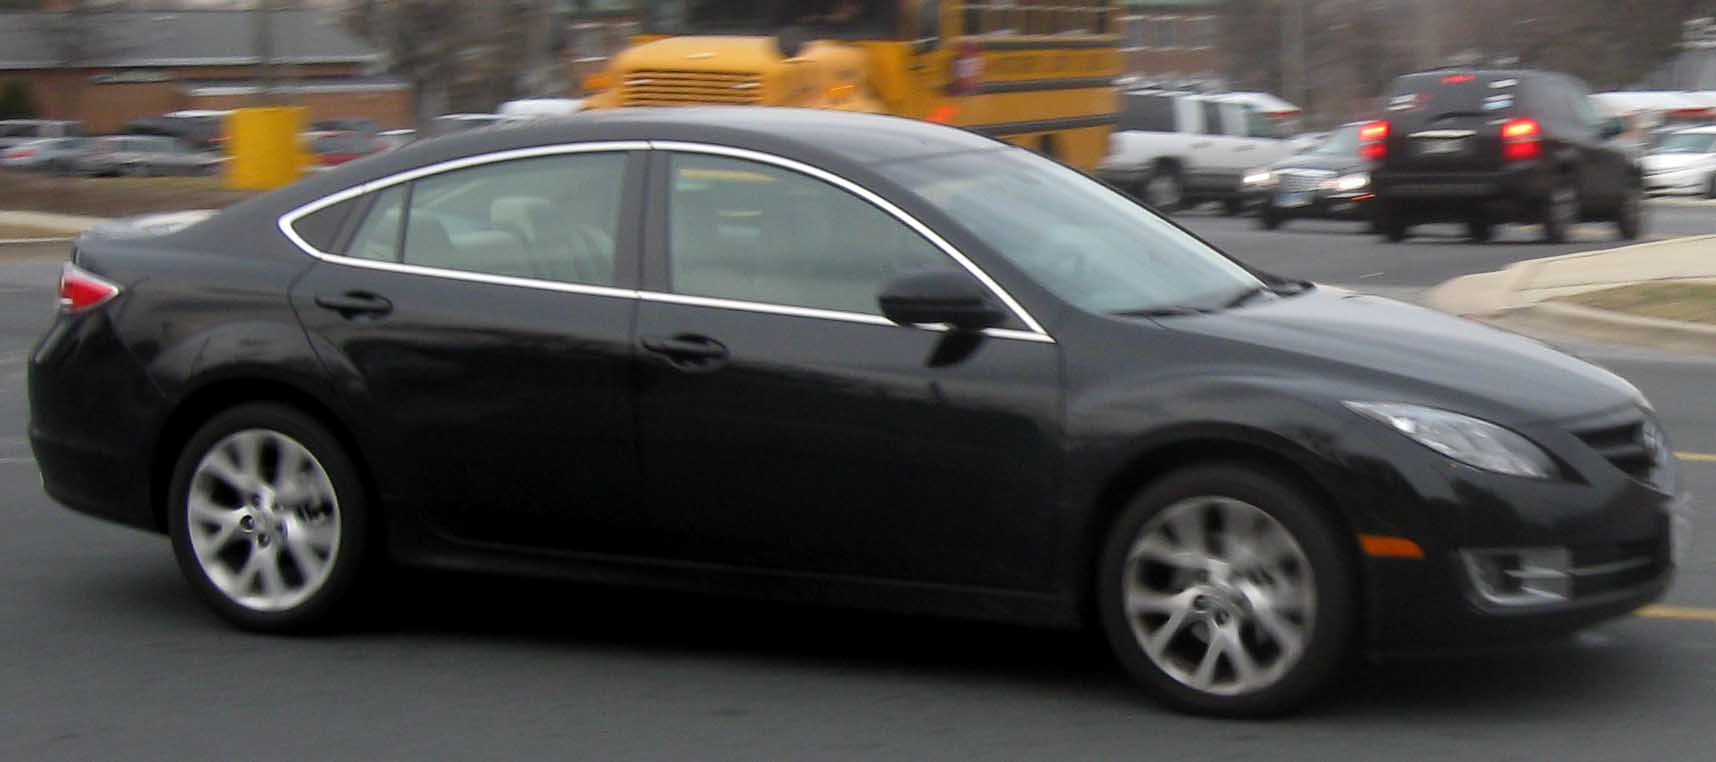 File 2009 Mazda6 Jpg Wikimedia Commons